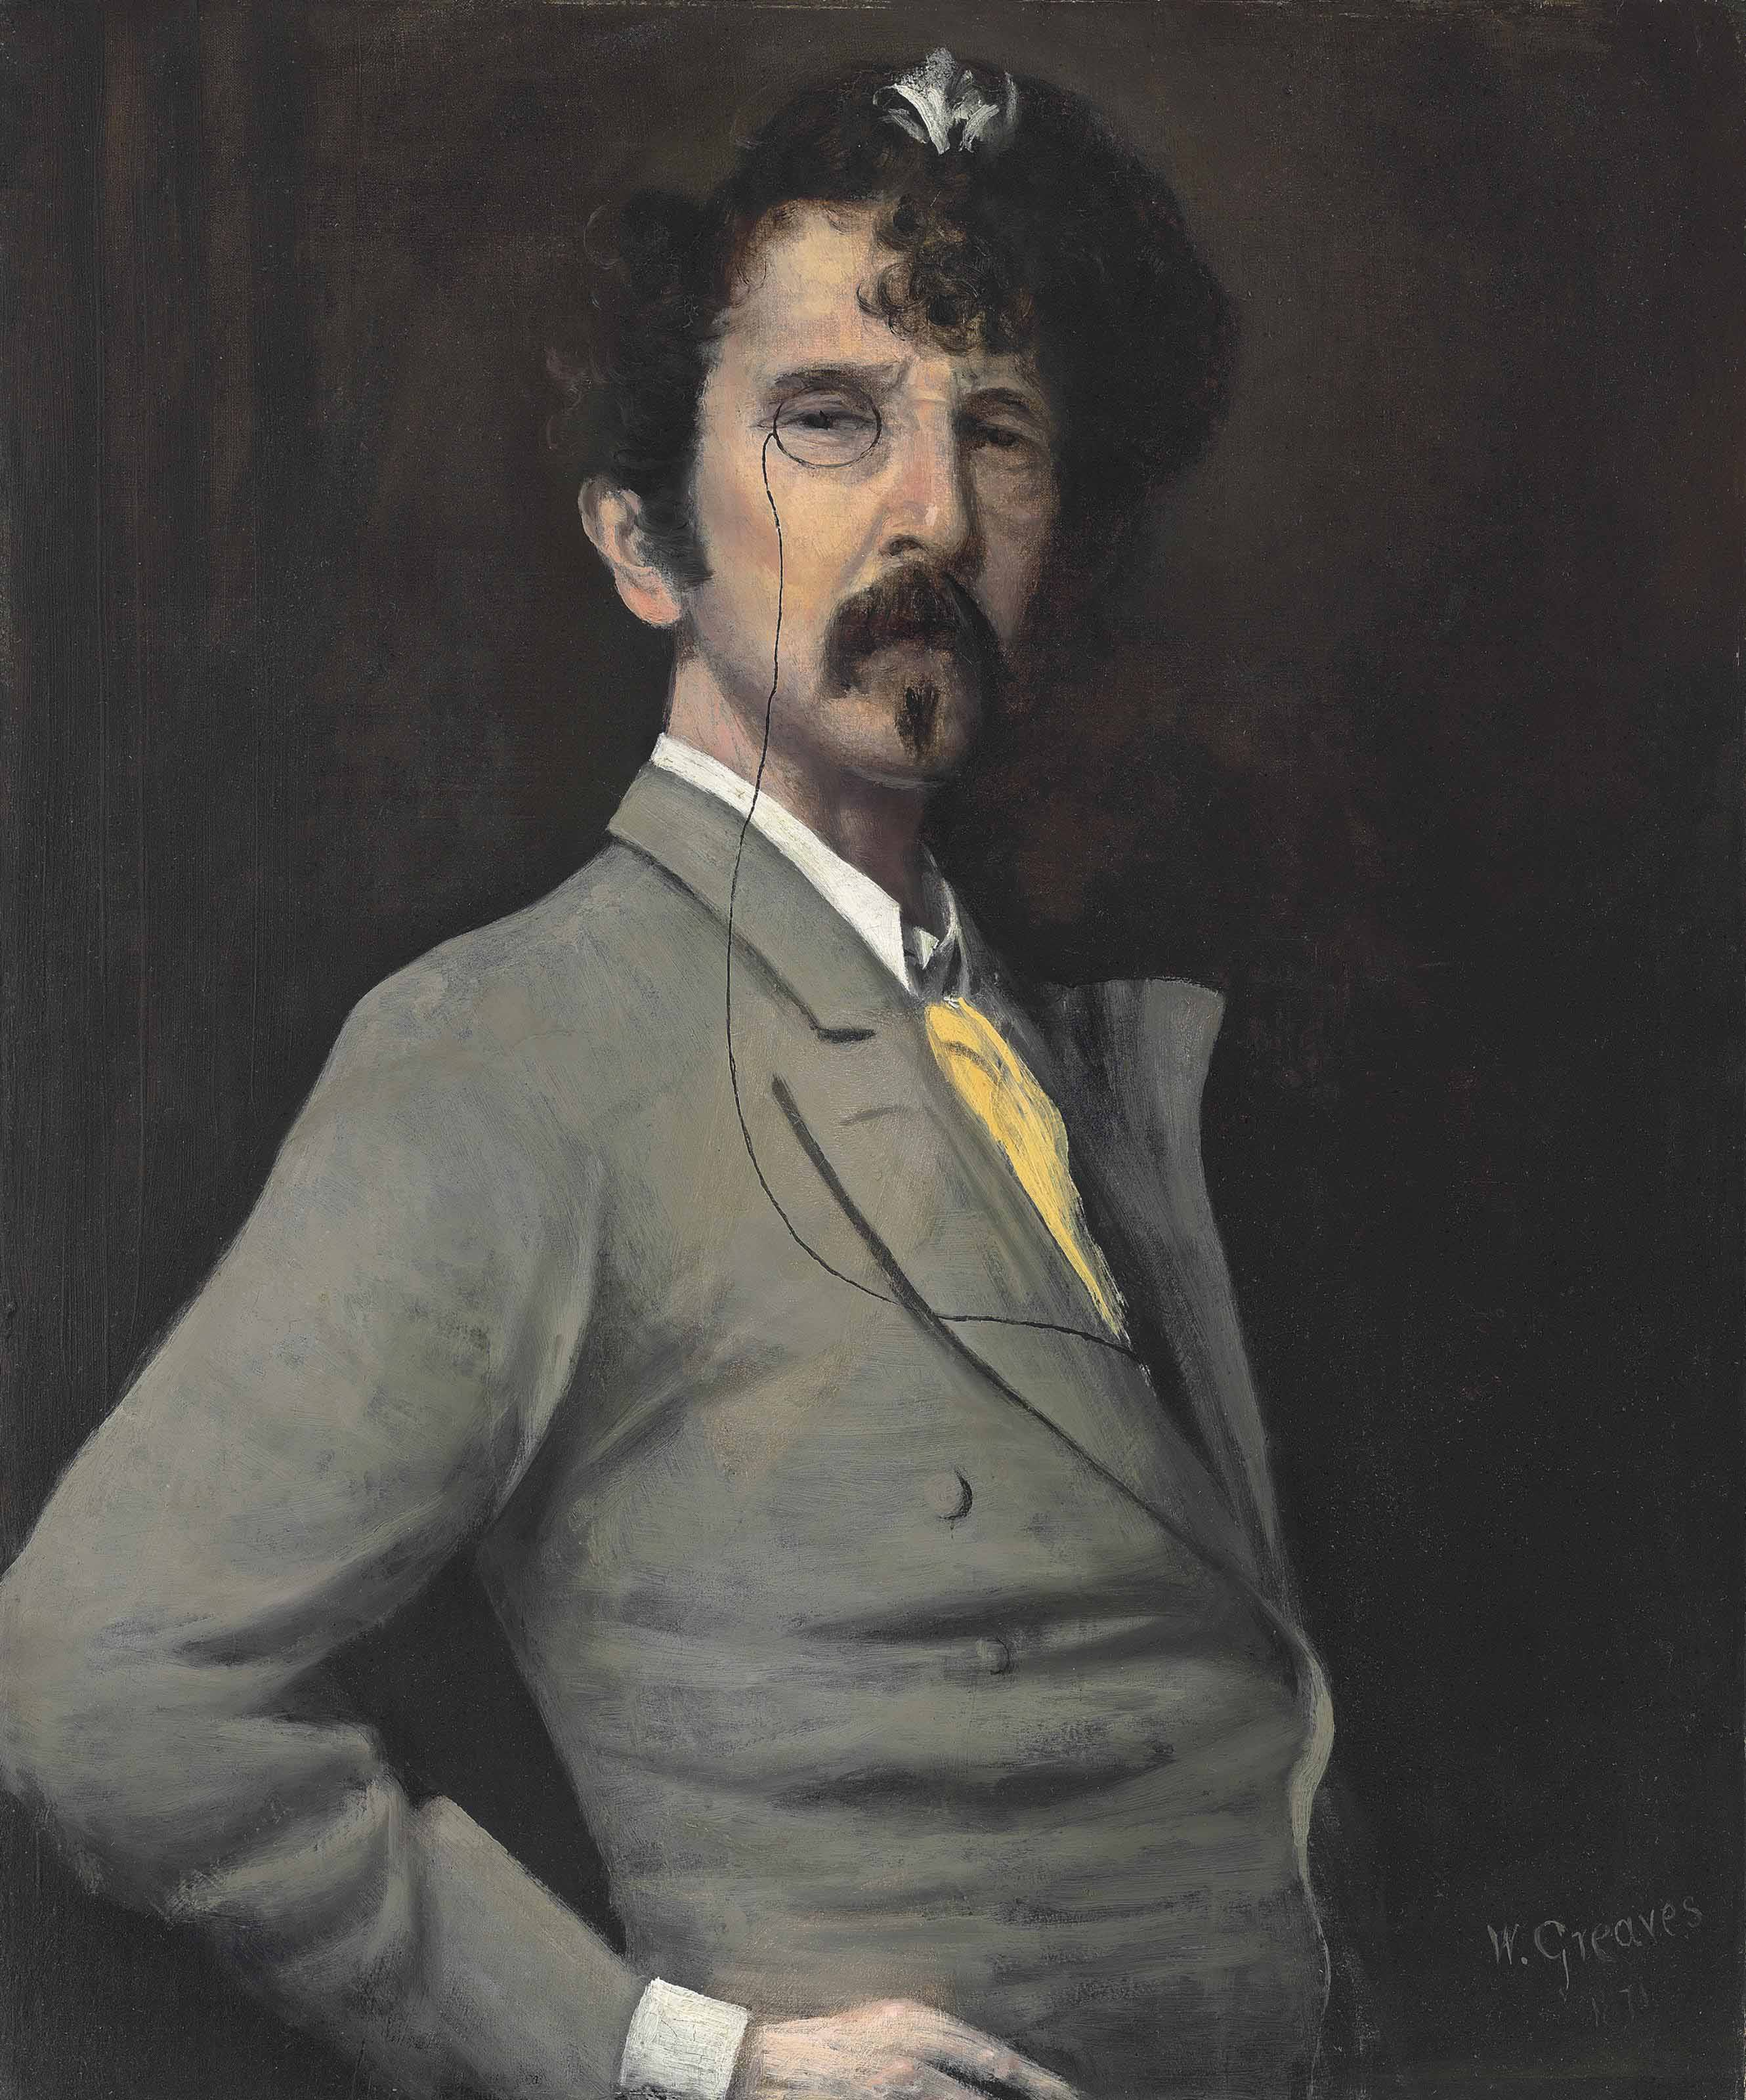 Portrait of James McNeill Whistler